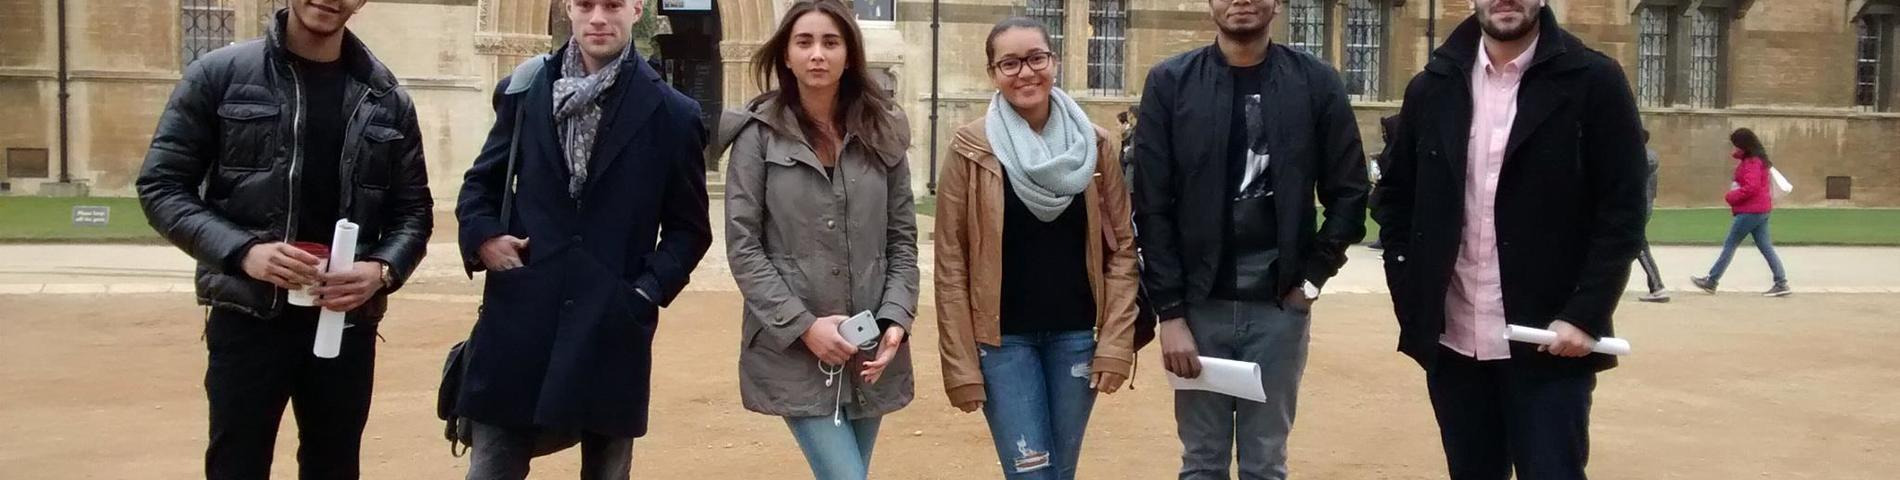 Oxford International Study Centre picture 1